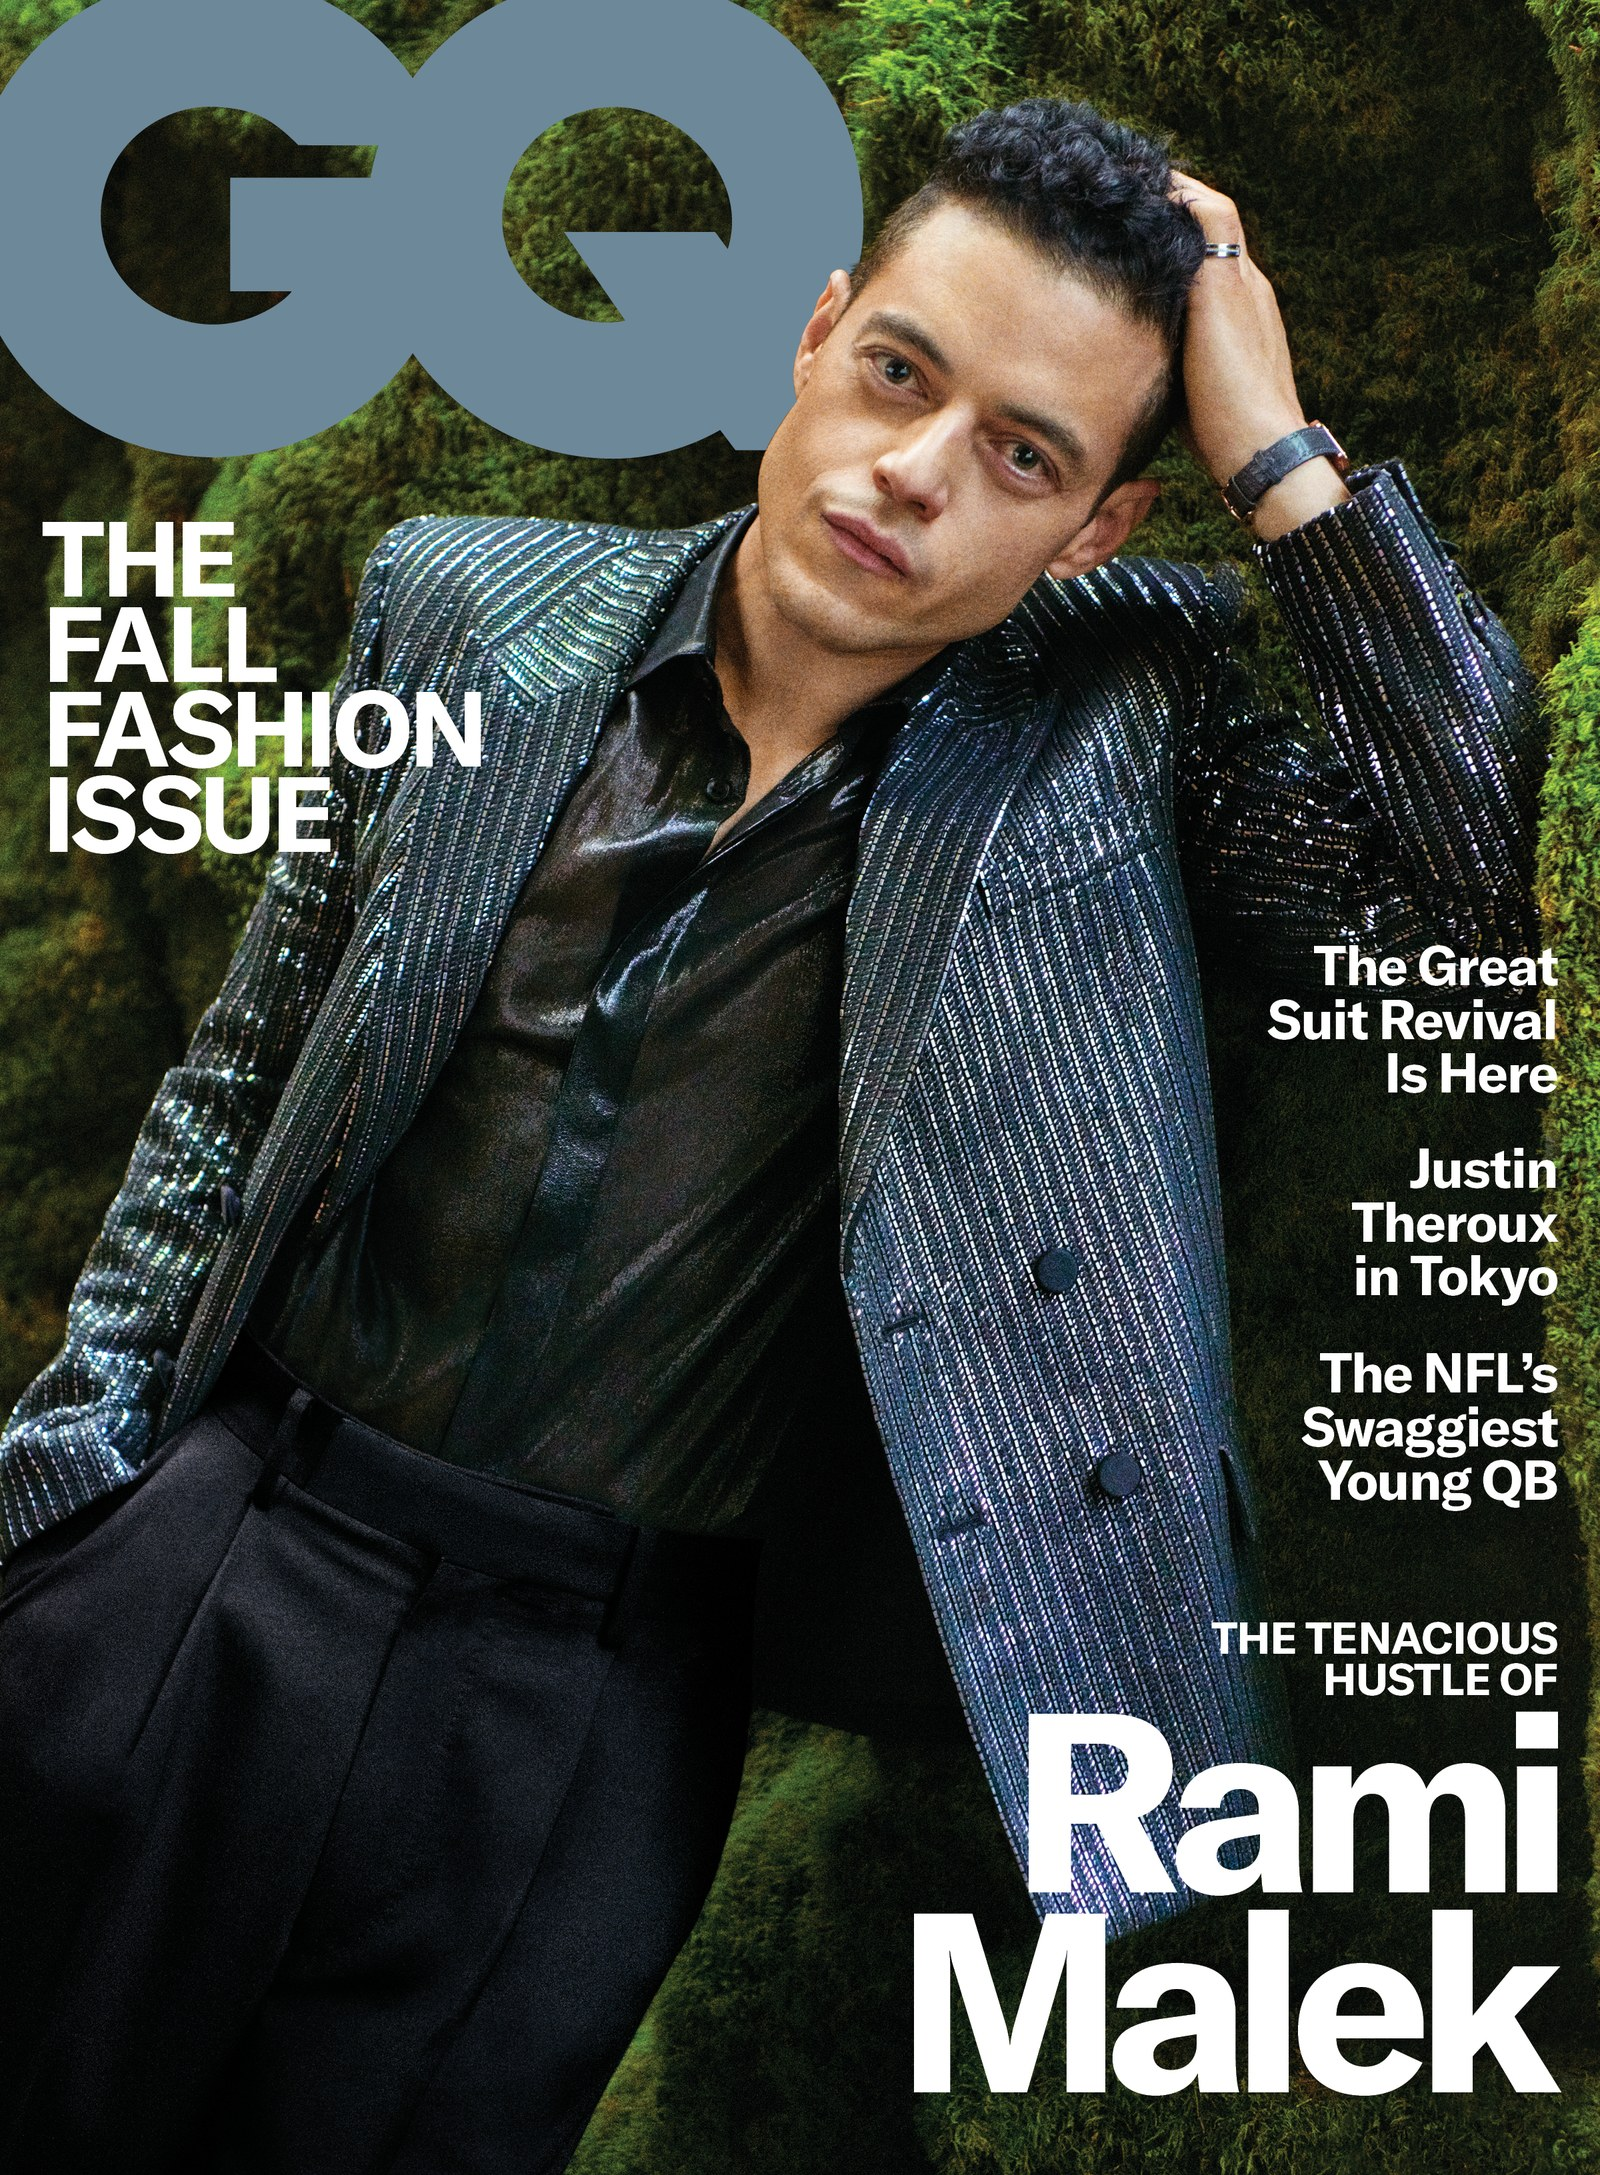 rami-malek-cover-gq-september-2019.jpg